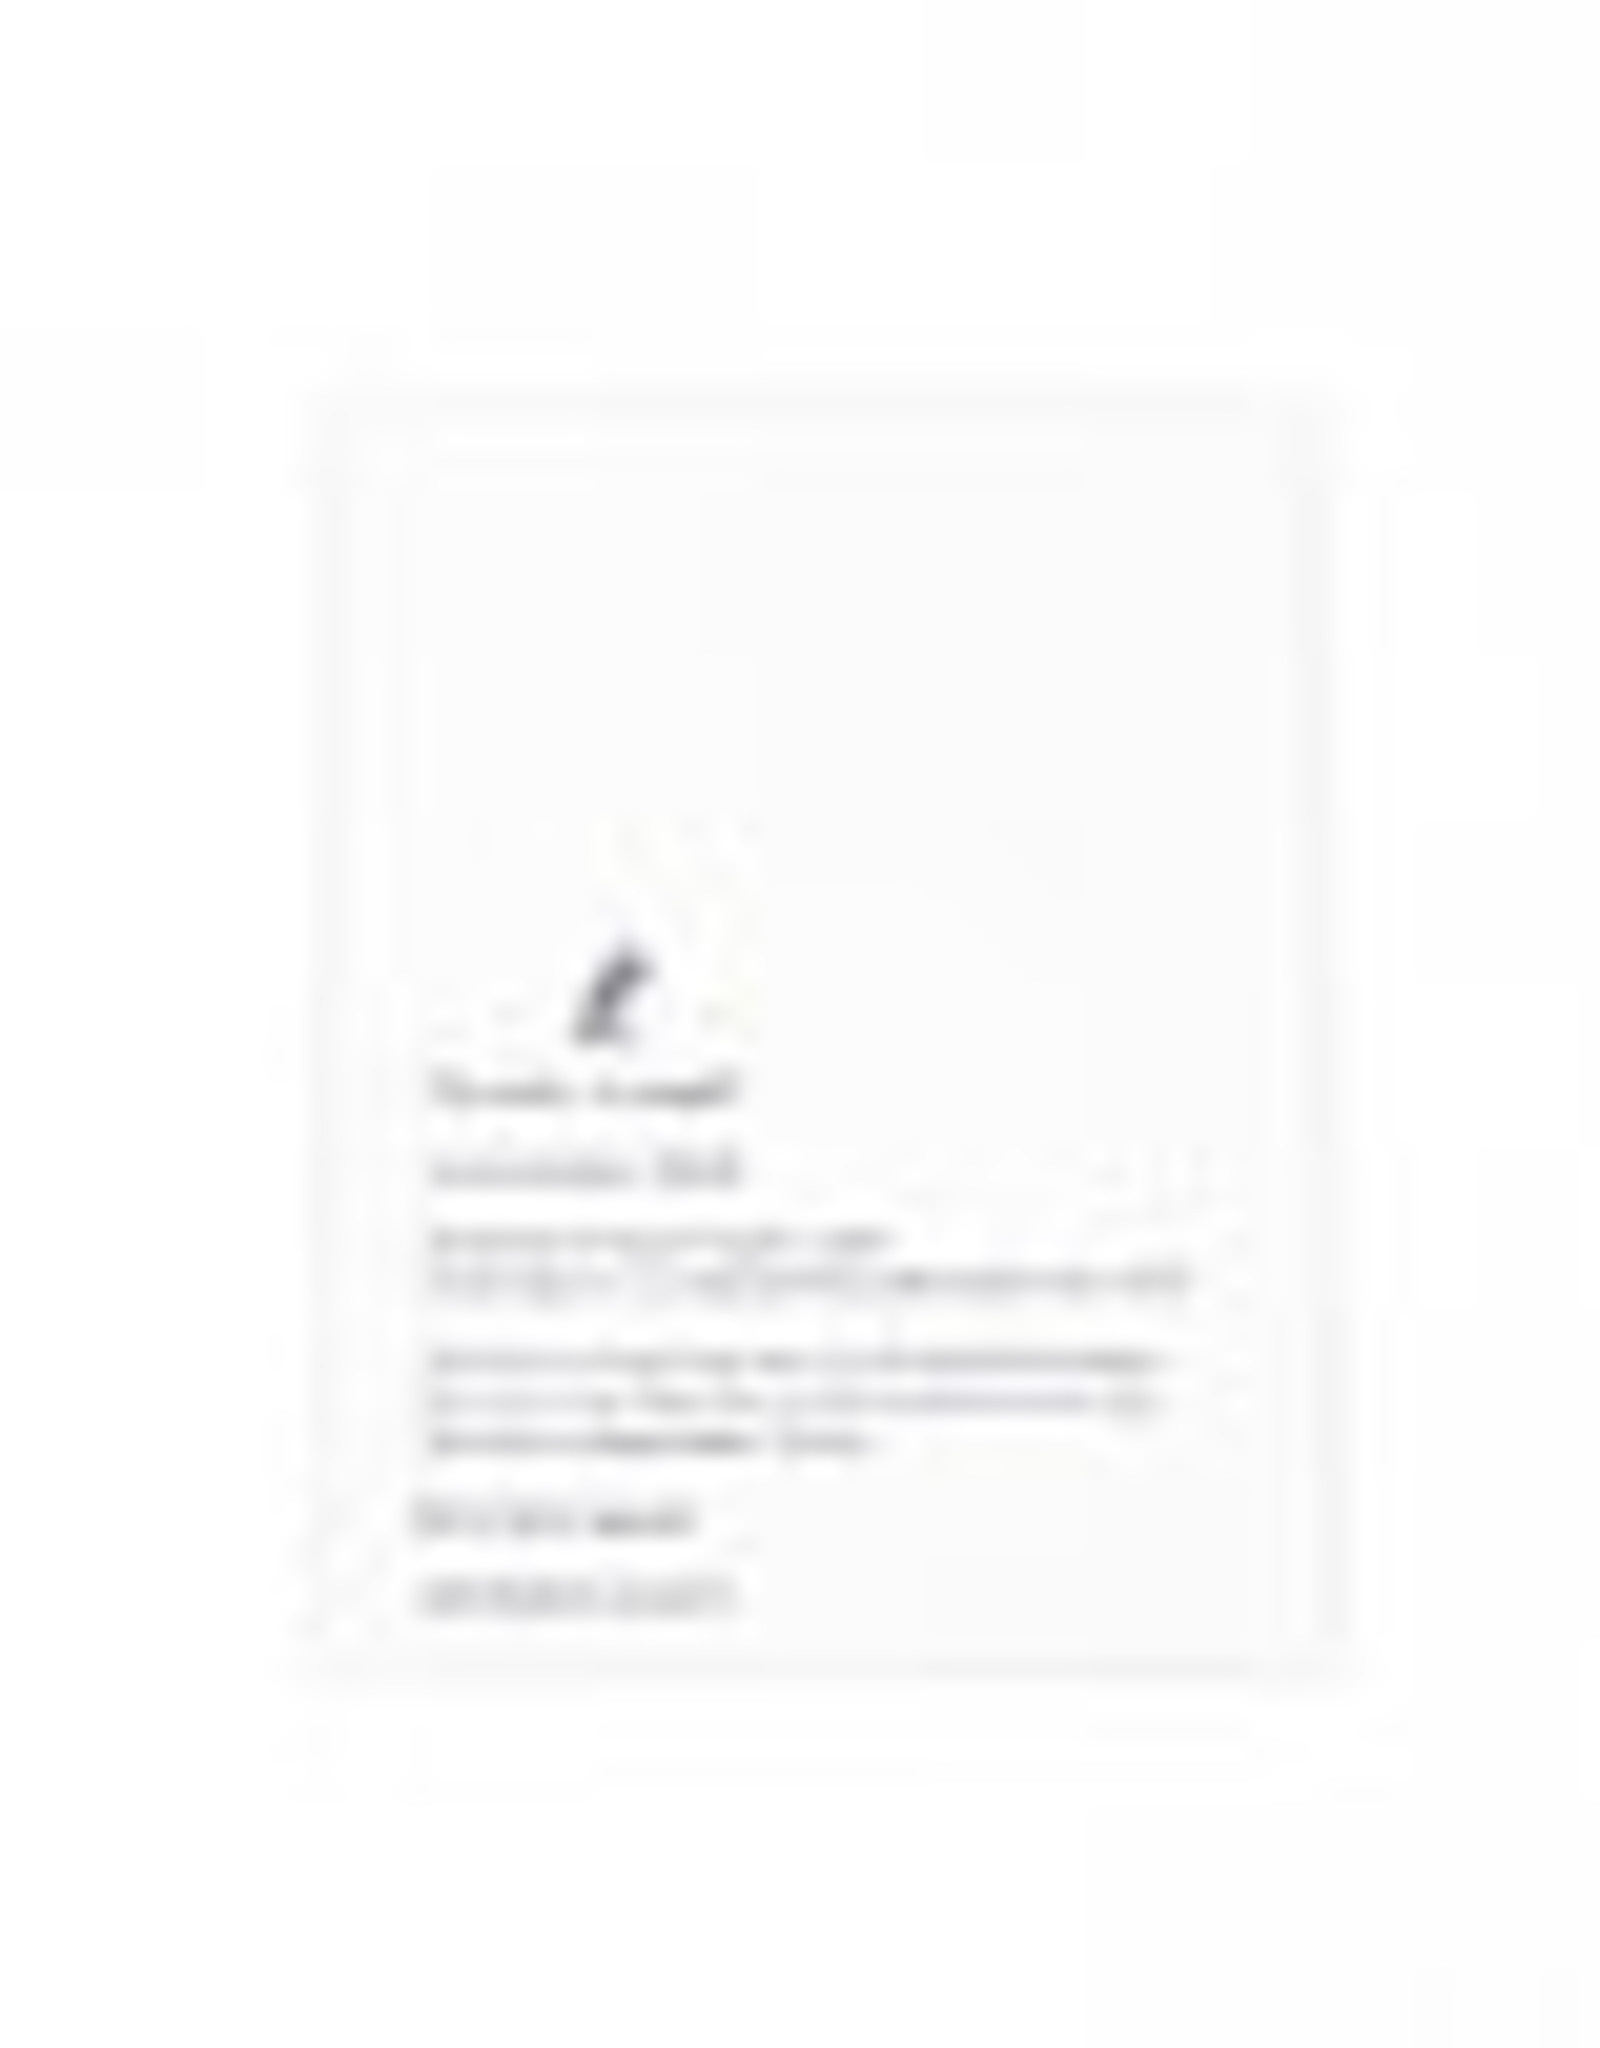 The Pear in Paper Letterpress - Individually we are one drop